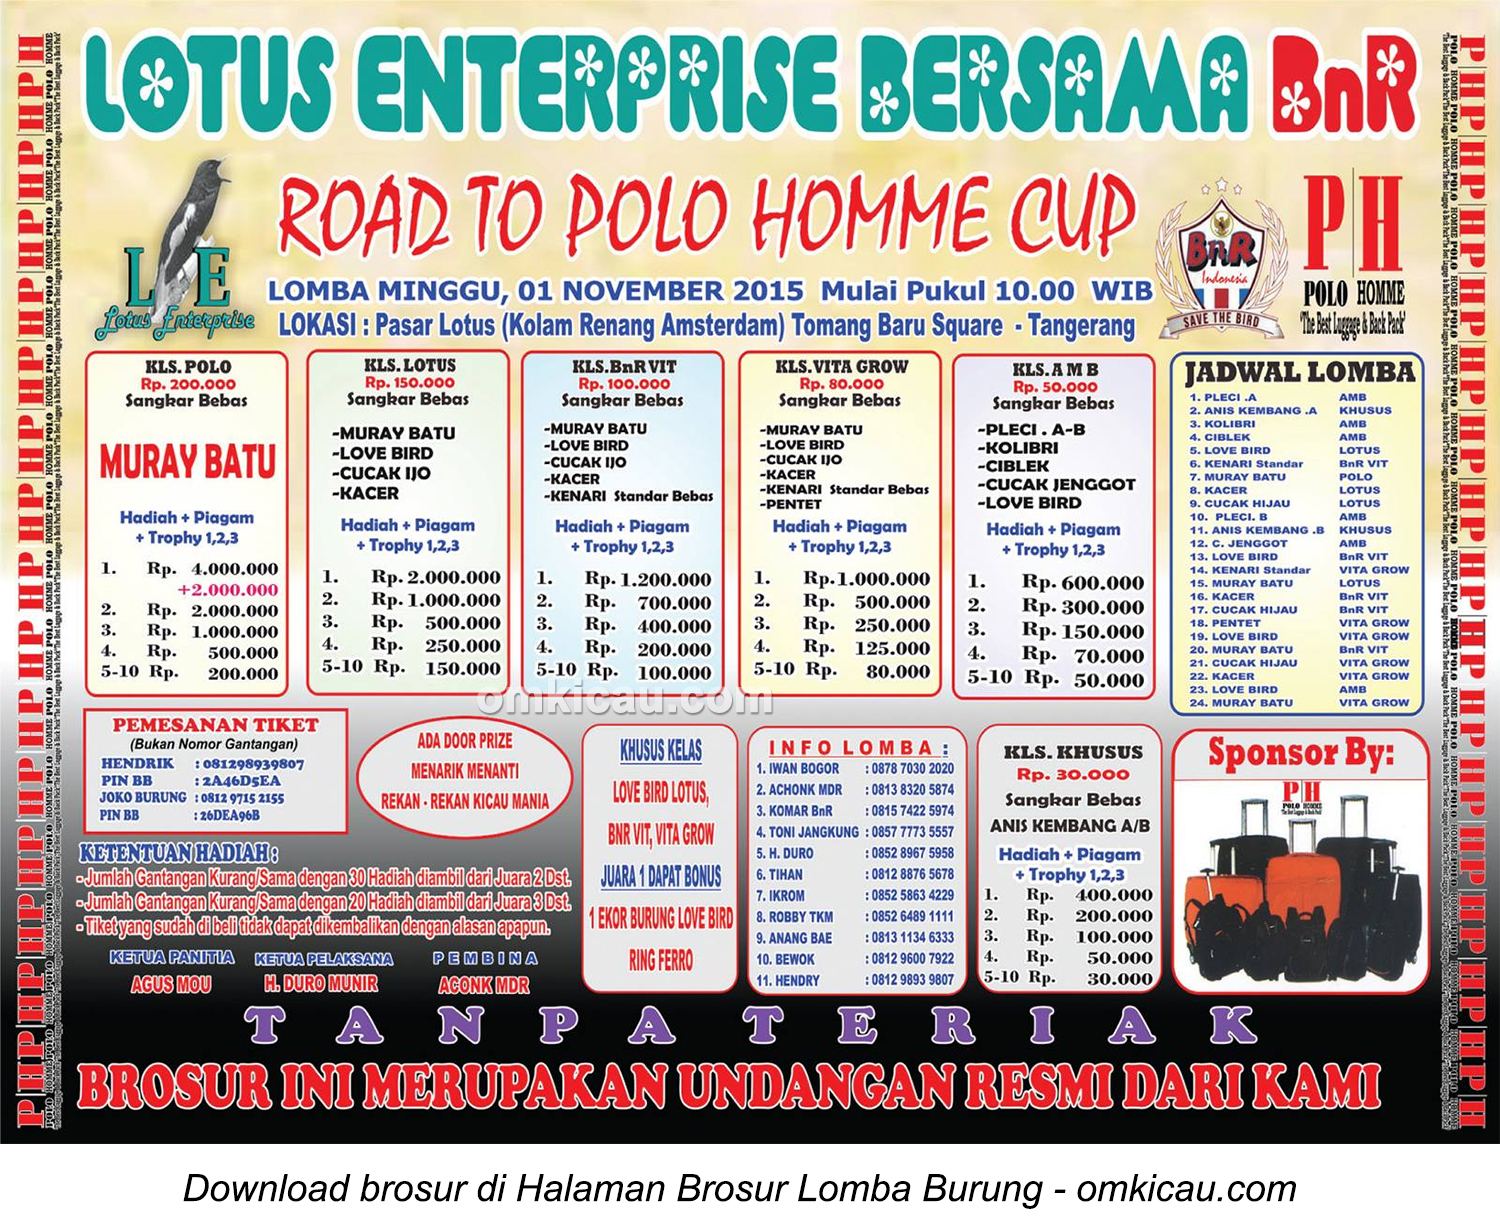 Brosur Lomba Burung Berkicau Lotus Enterprise-Road to Polo Home Cup, Tangerang, 1 November 2015